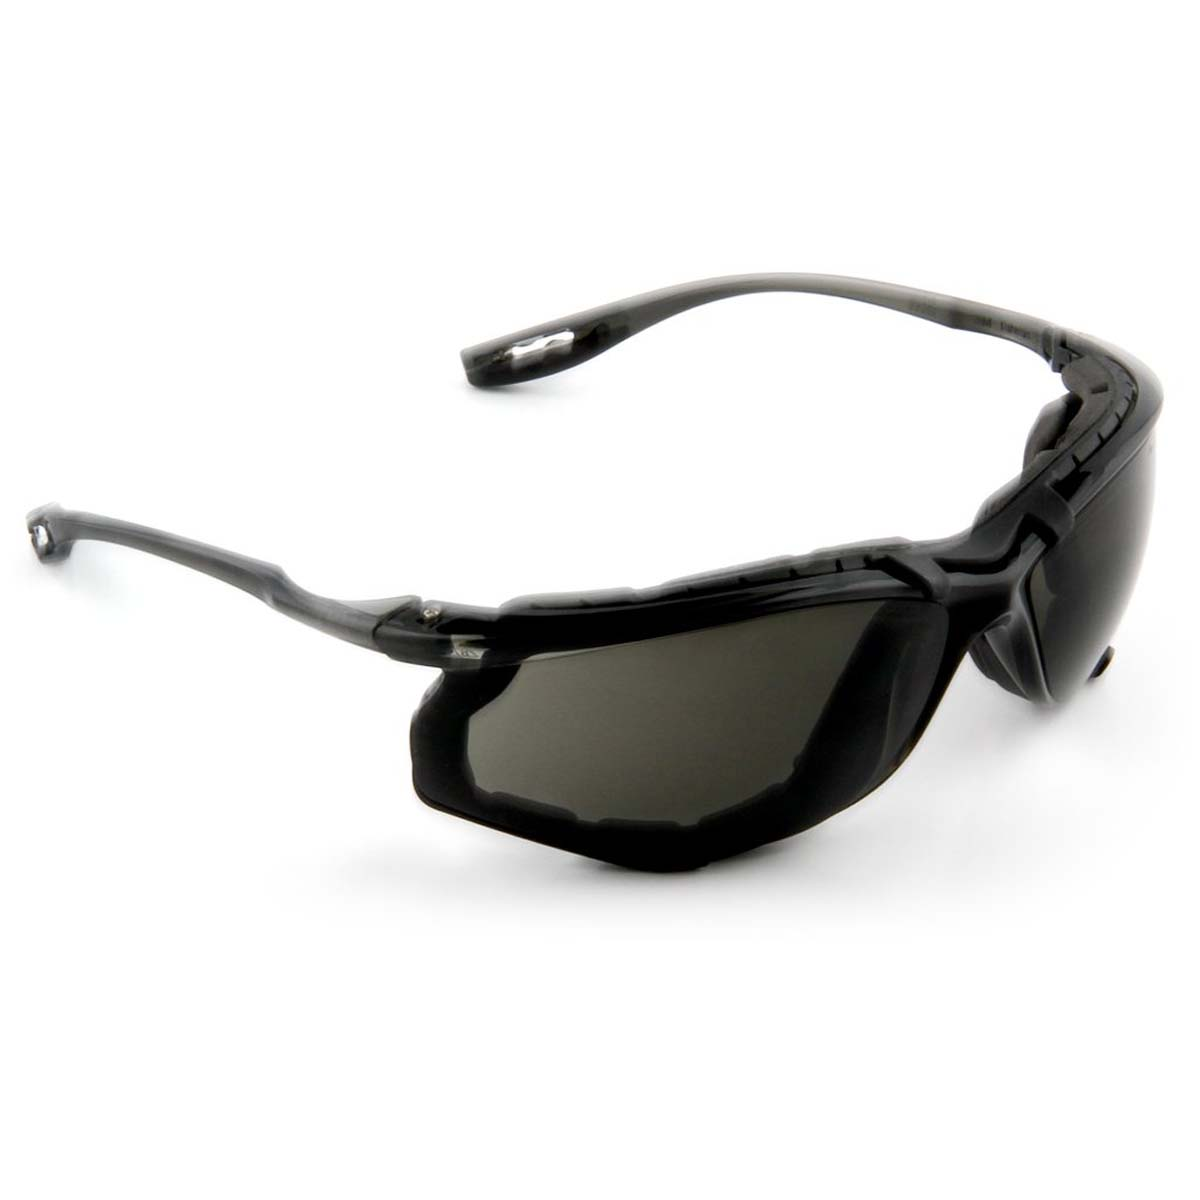 "3Mâ""¢ Virtuaâ""¢ CCS Protective Eyewear 11873-00000-20, with Foam Gasket,  GRAY Anti-Fog Lens,"